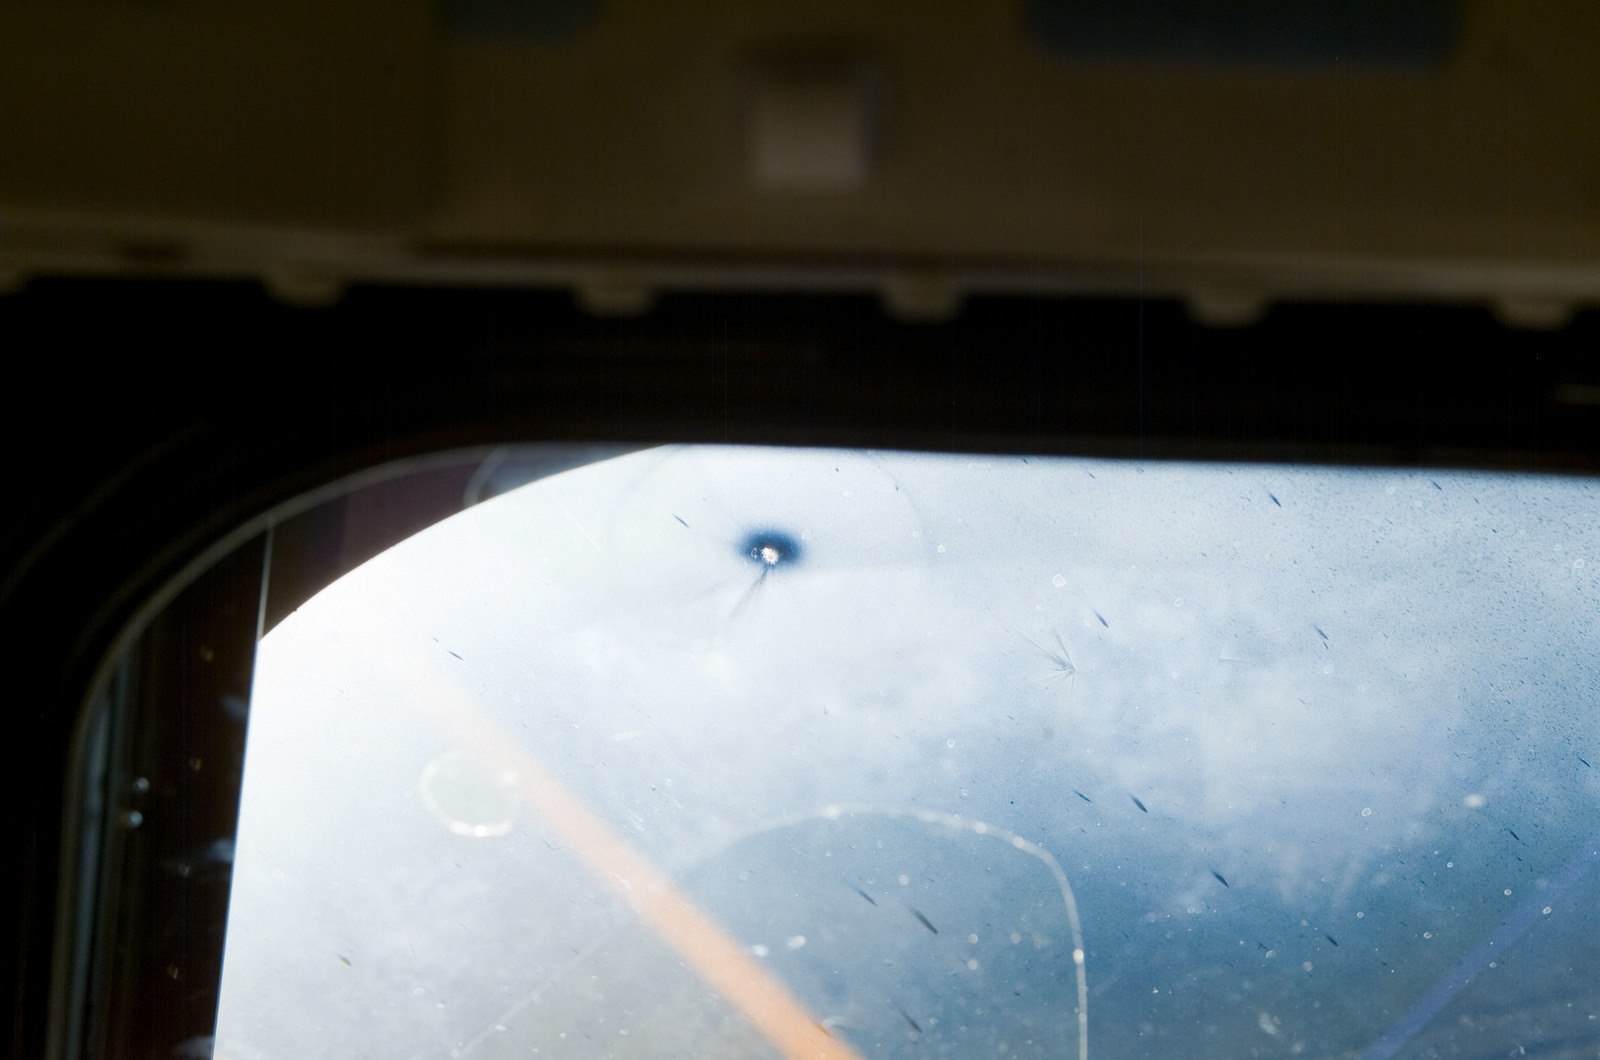 S120E008302 - STS-120 - View of window on Discovery flight deck